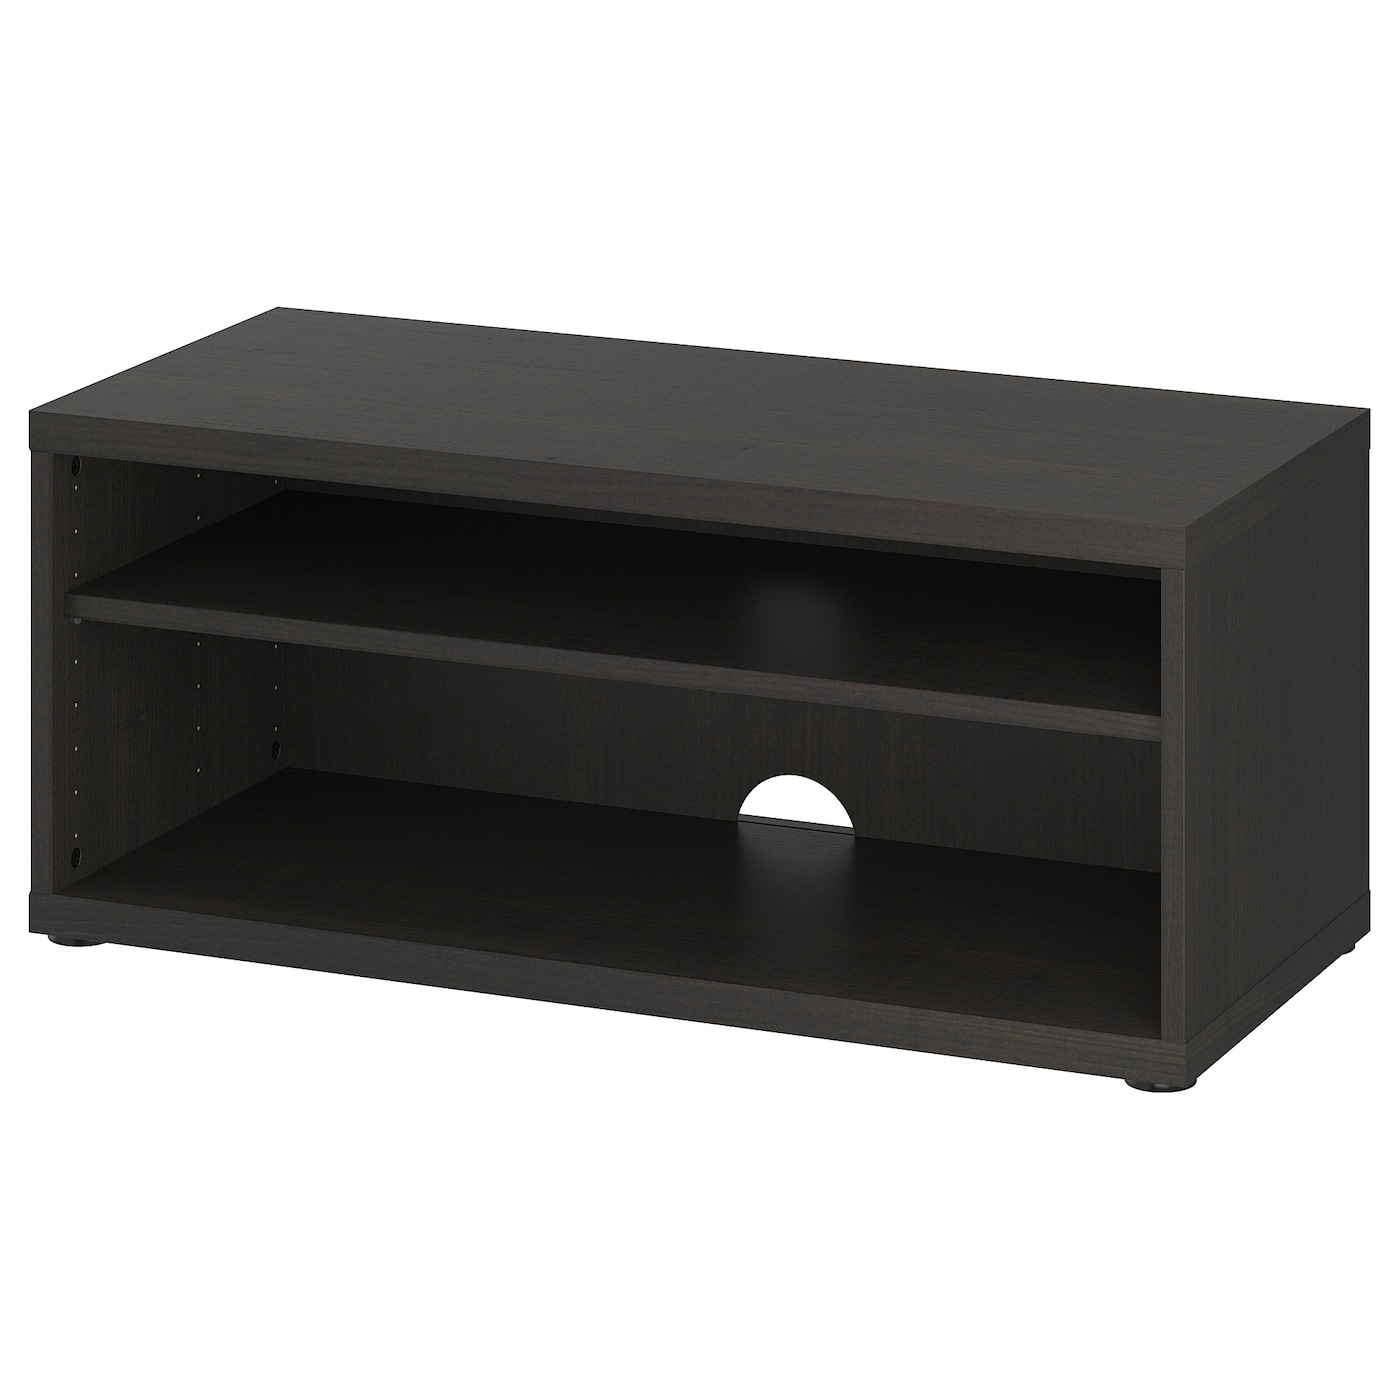 Tv Stands Amp Media Units Ikea Ireland Dublin